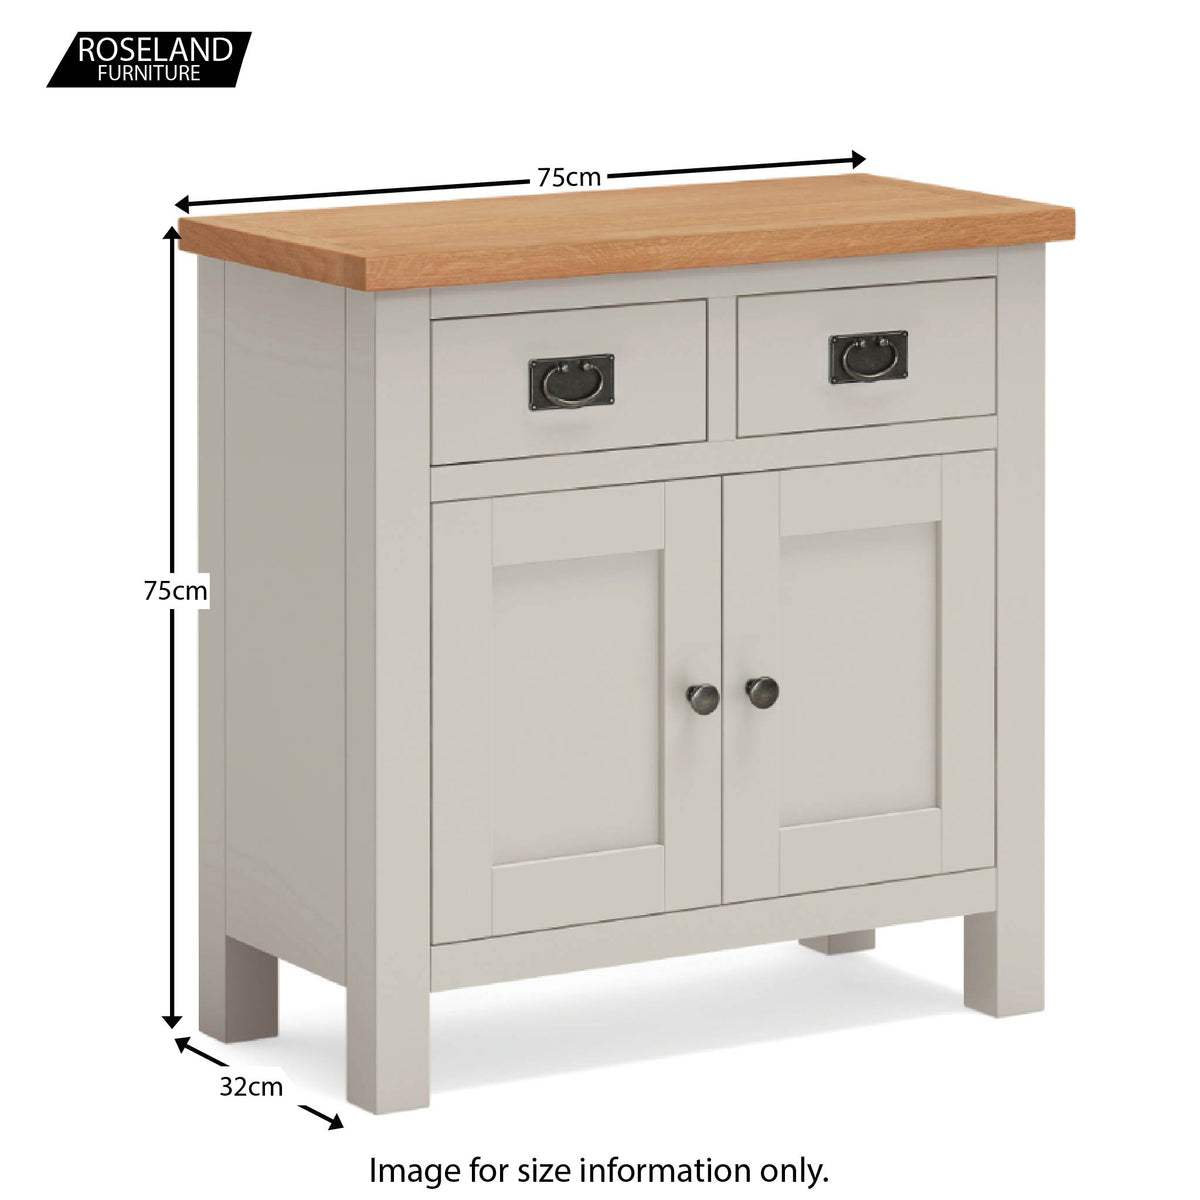 Dorset Stone Grey Mini Sideboard Cabinet size guide